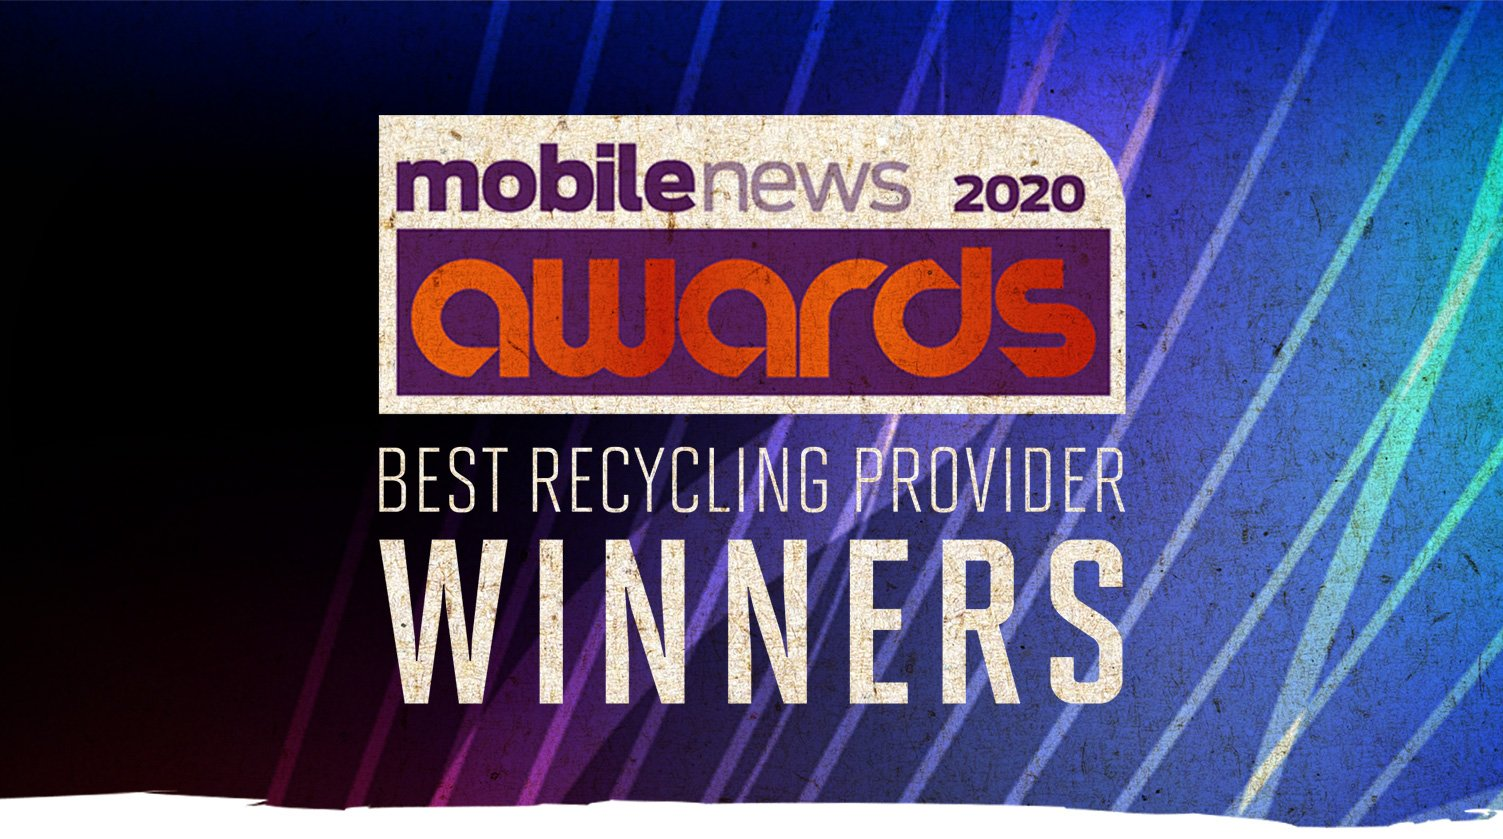 GSUK Battle With Industry Giants To Be Named As Mobile News Best Recycling Provider